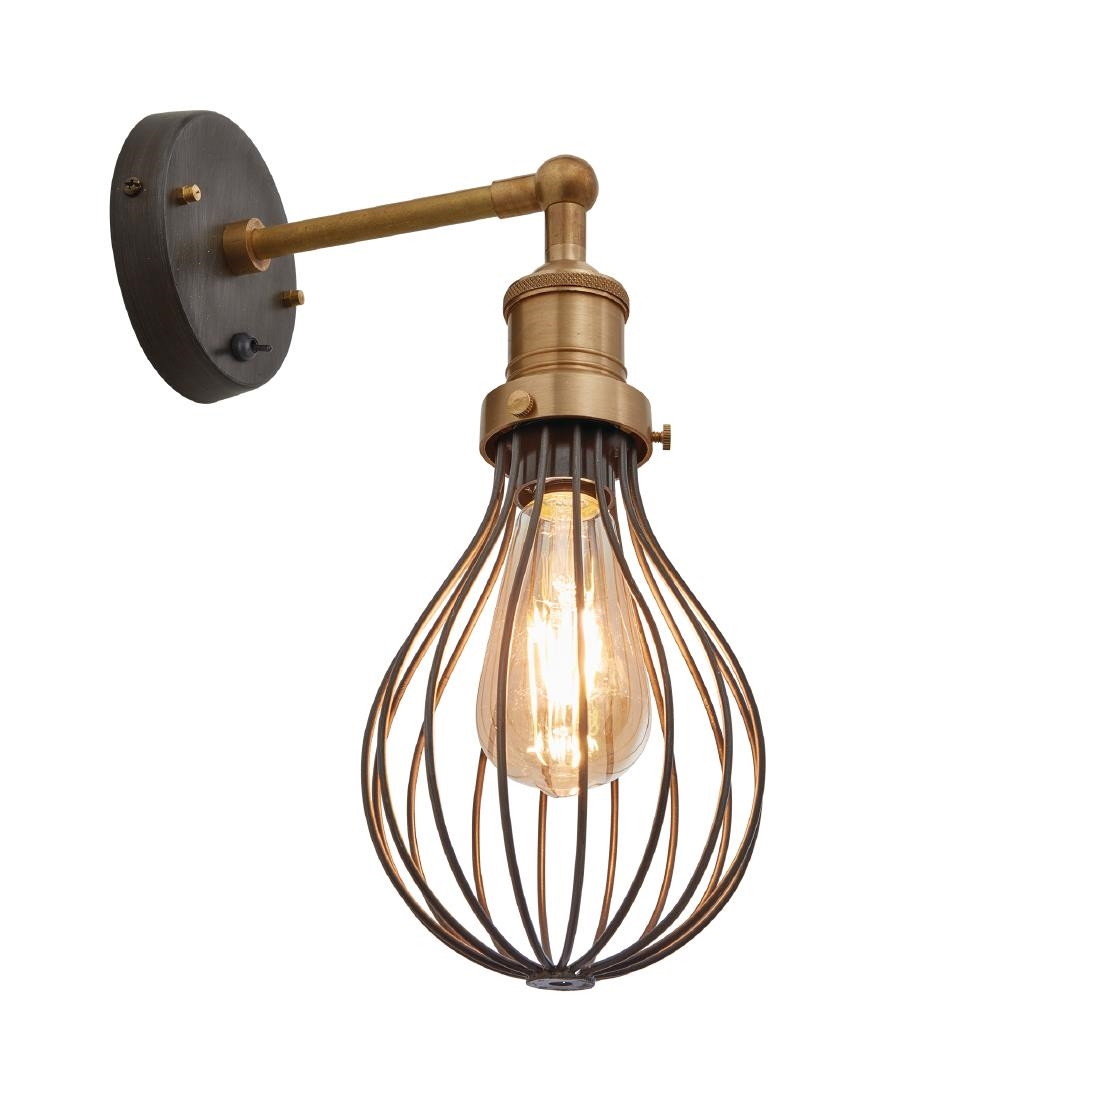 Image of Industville Brooklyn Balloon Cage Wall Light Pewter 140mm